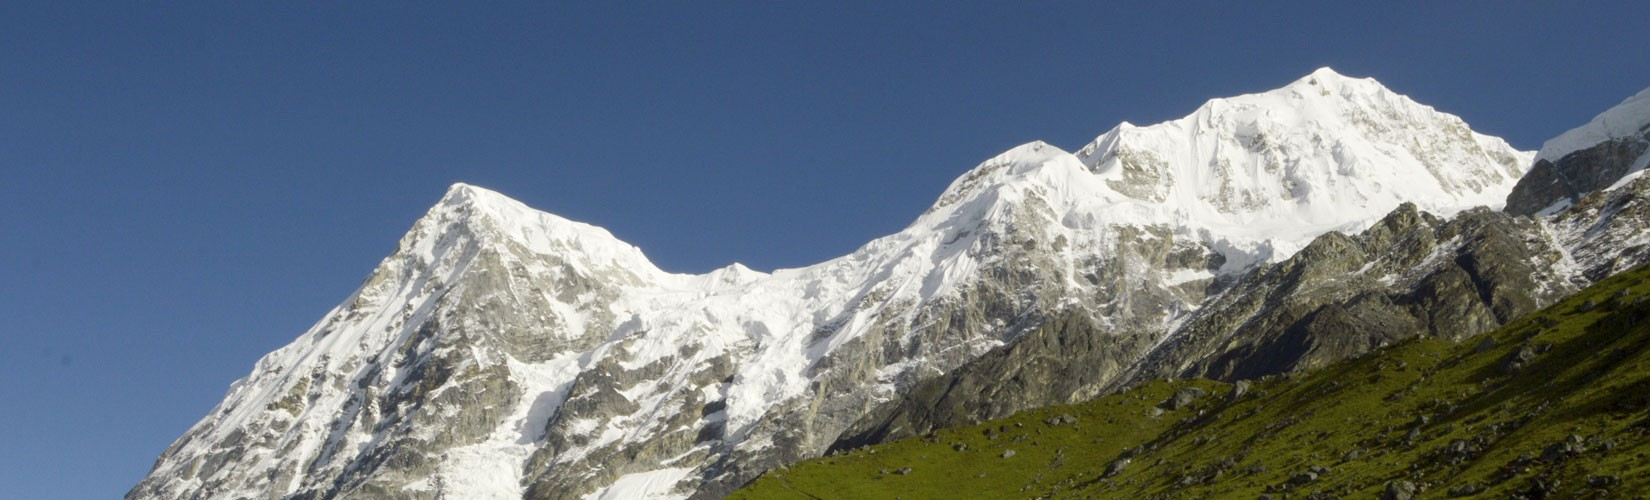 Kanchanjunga  is world's third highest peak that has height of 8,585m from sea level. It is said that this mountain is a residence of god who gives affluence and kindness to the residents of this area.